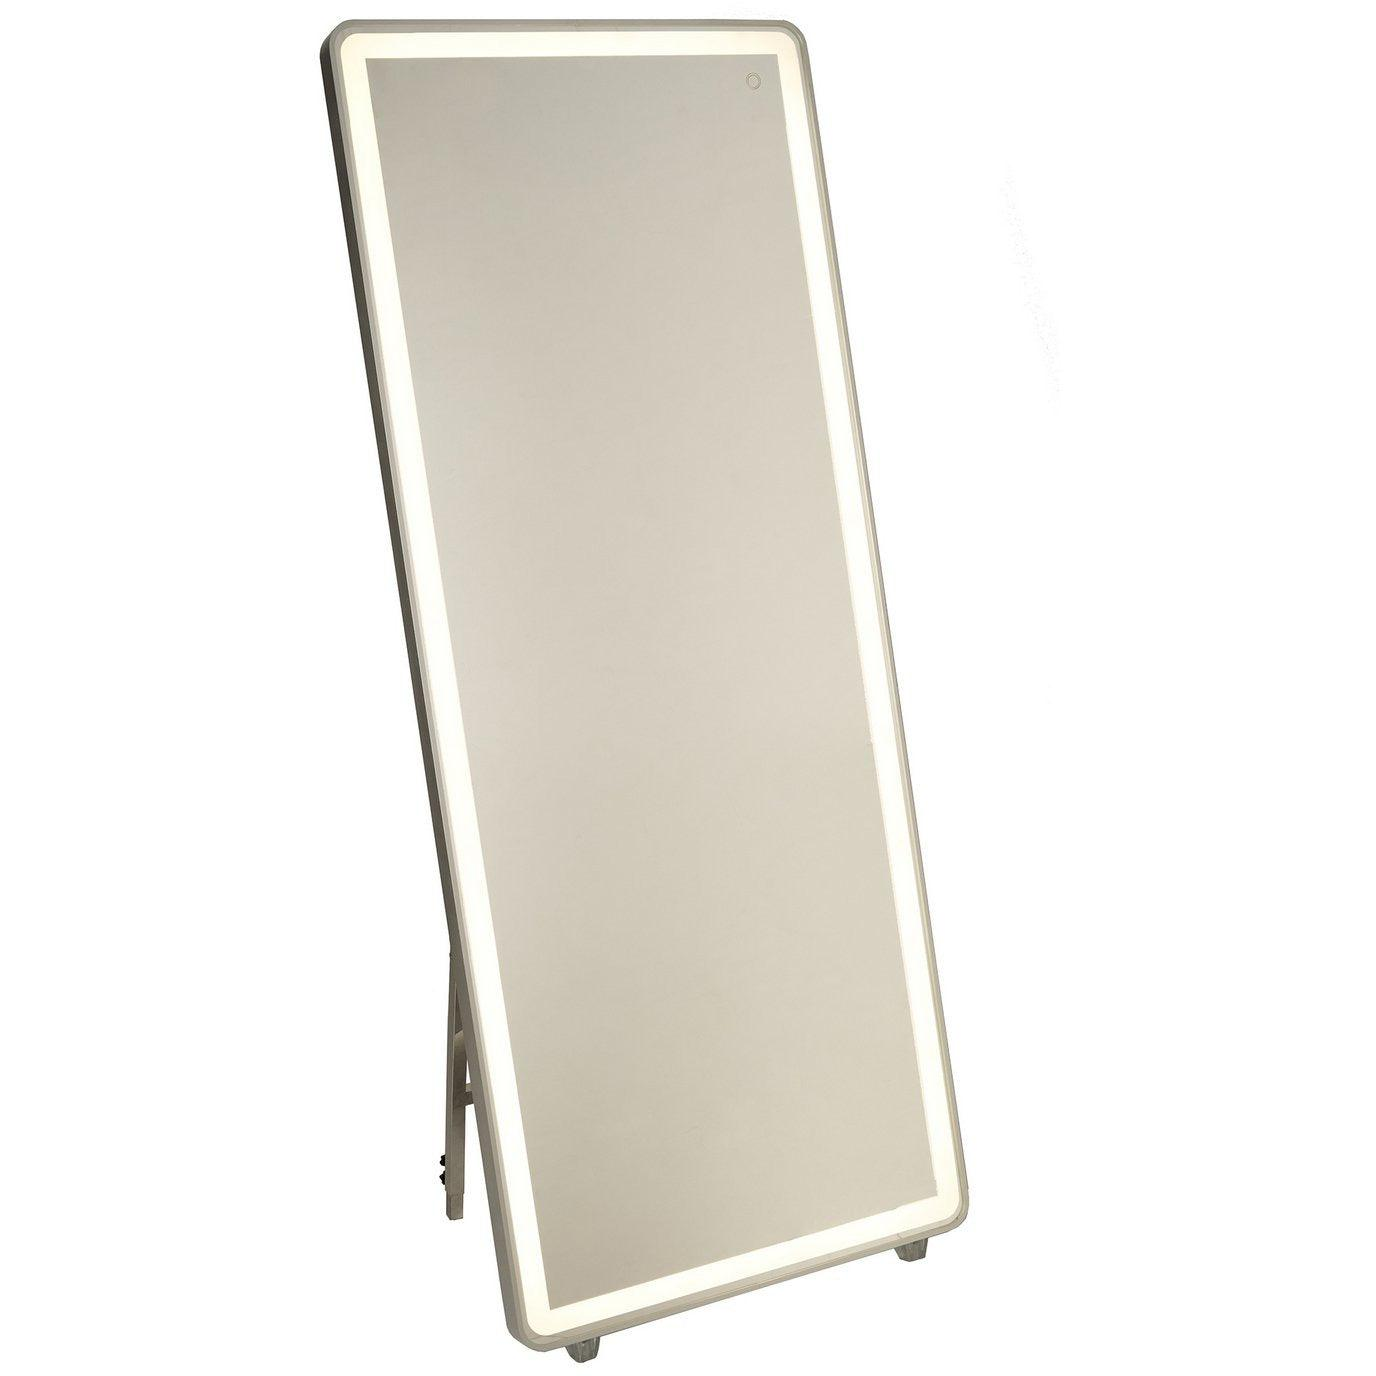 Artcraft Lighting - AM311 - LED Mirror - Reflections - Brushed Aluminum